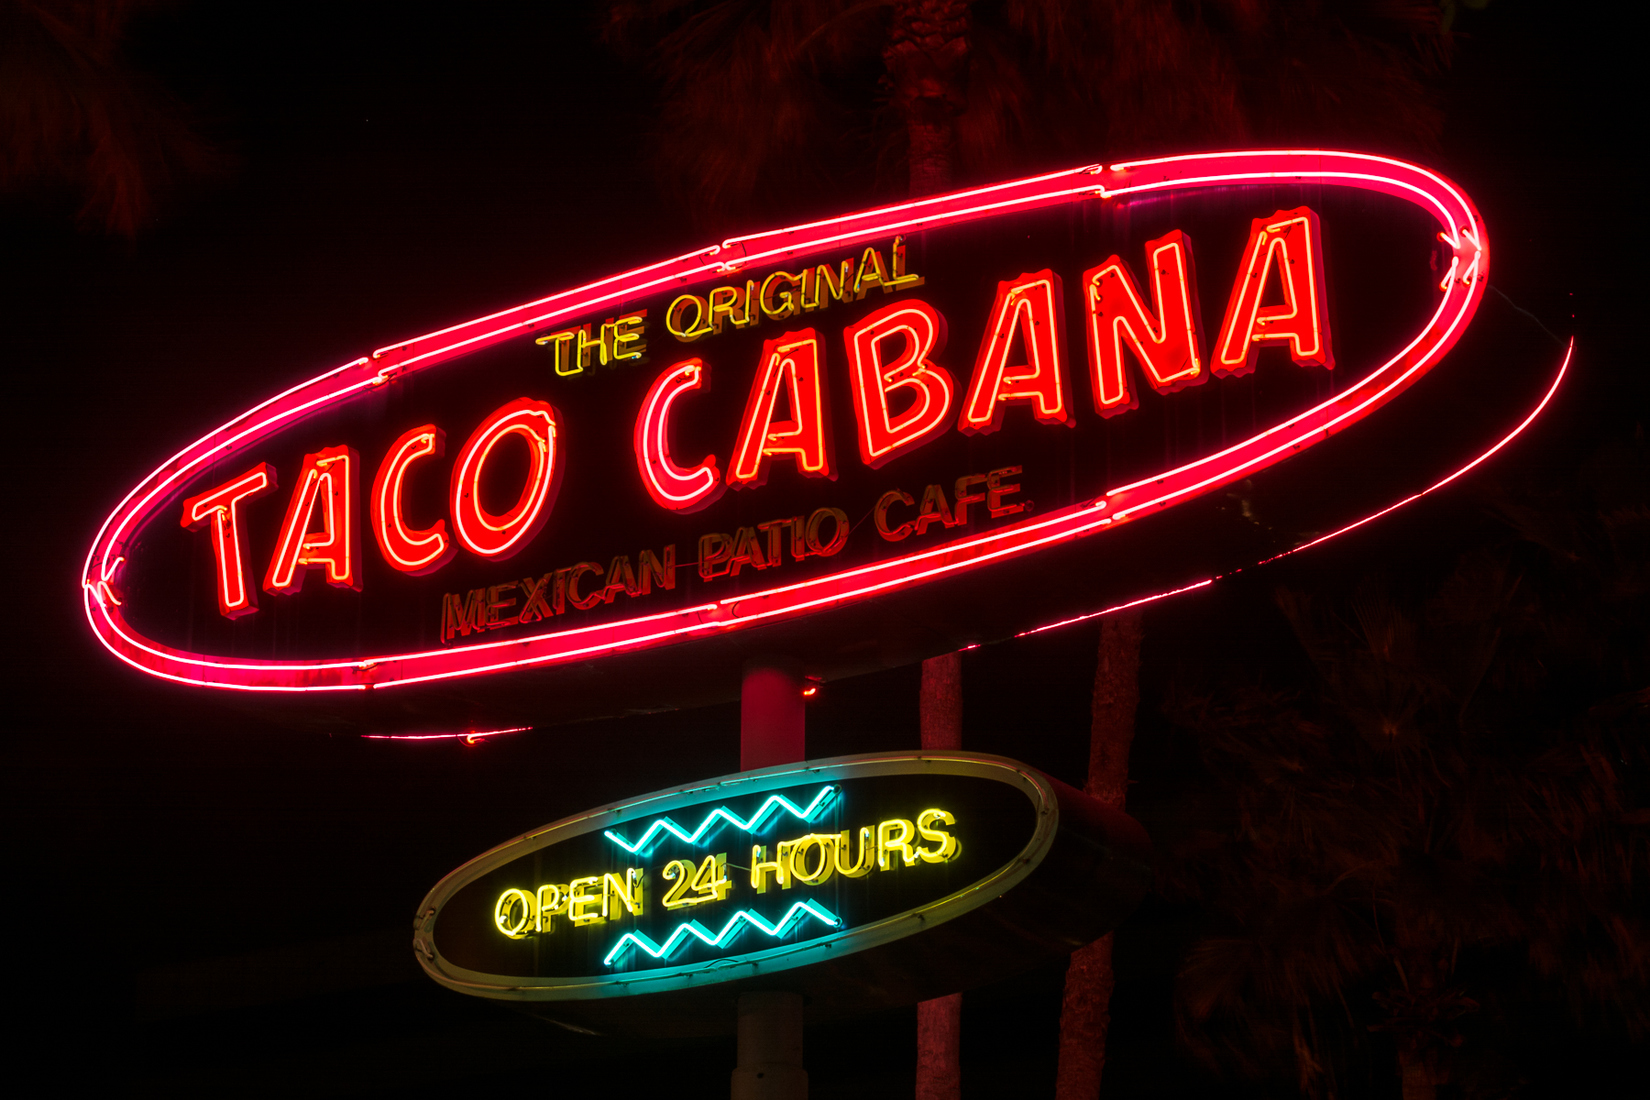 Houston Neon Taco Cabana - Houston, Texas